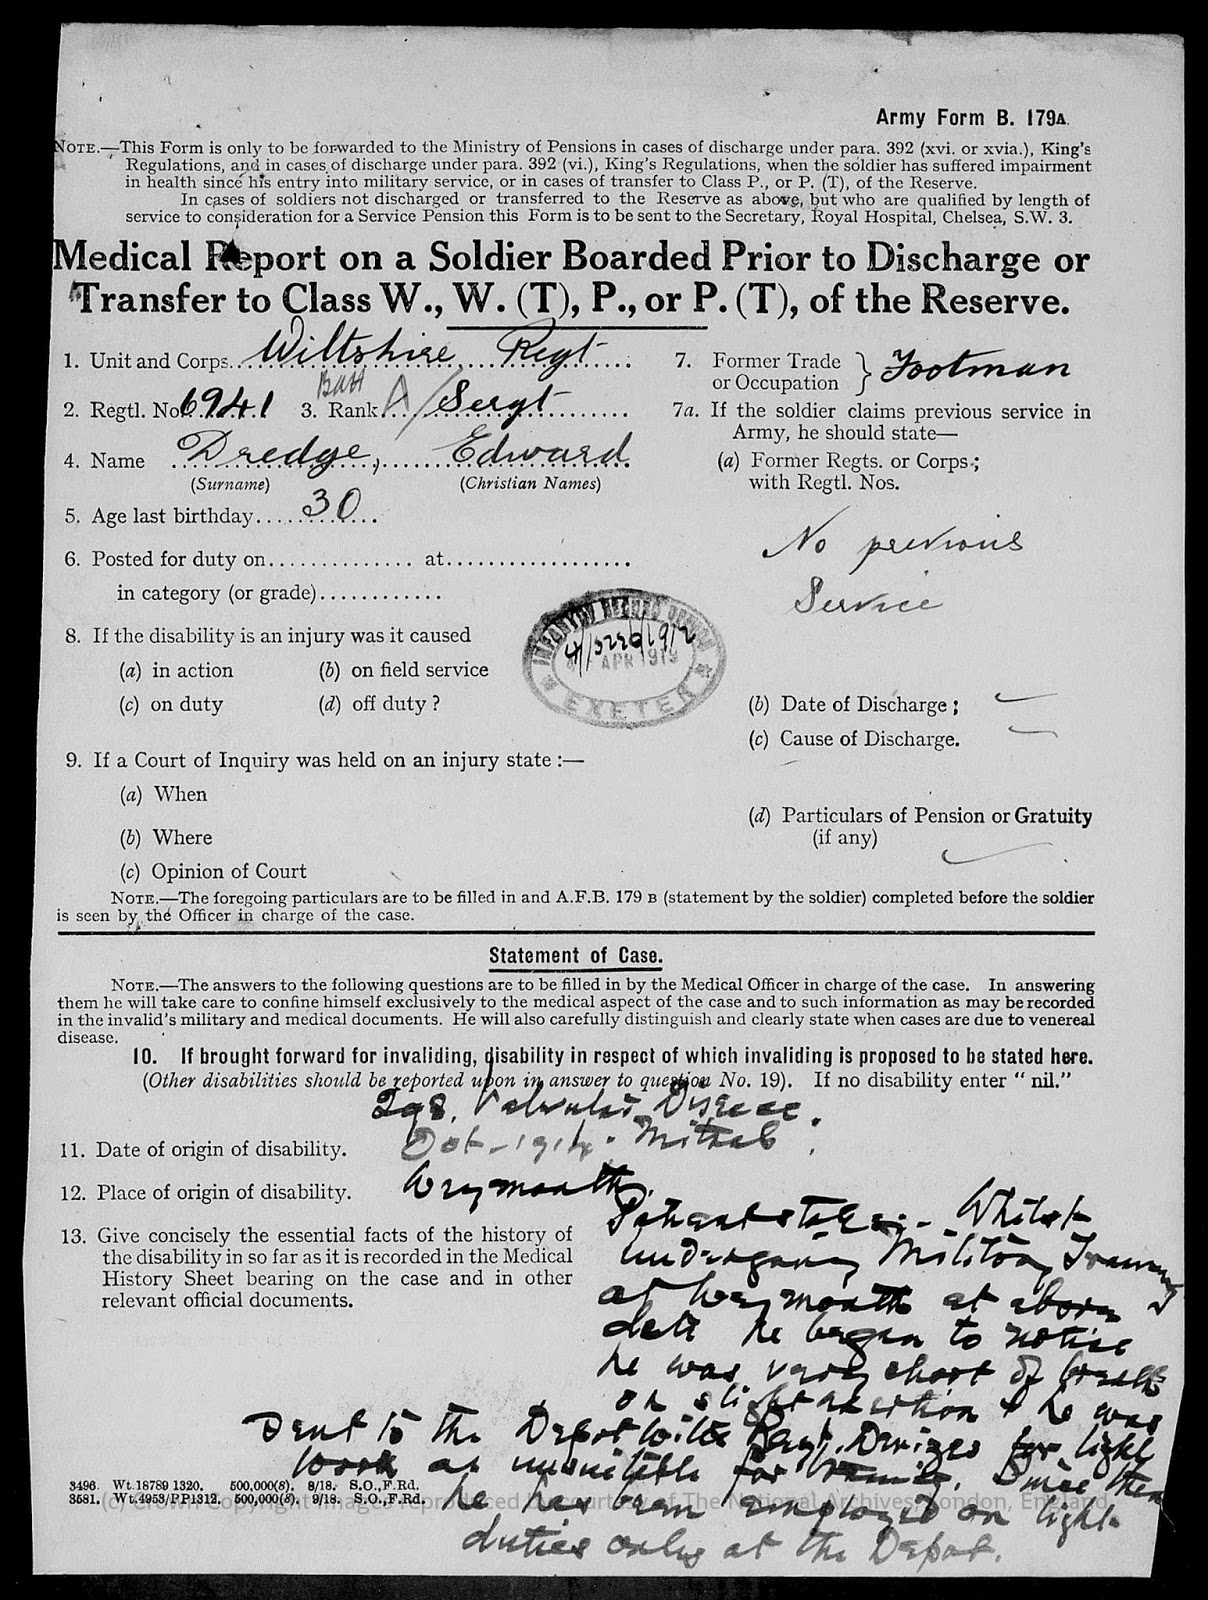 Army Forms & Attestations: Army Form B 179a - Medical Report